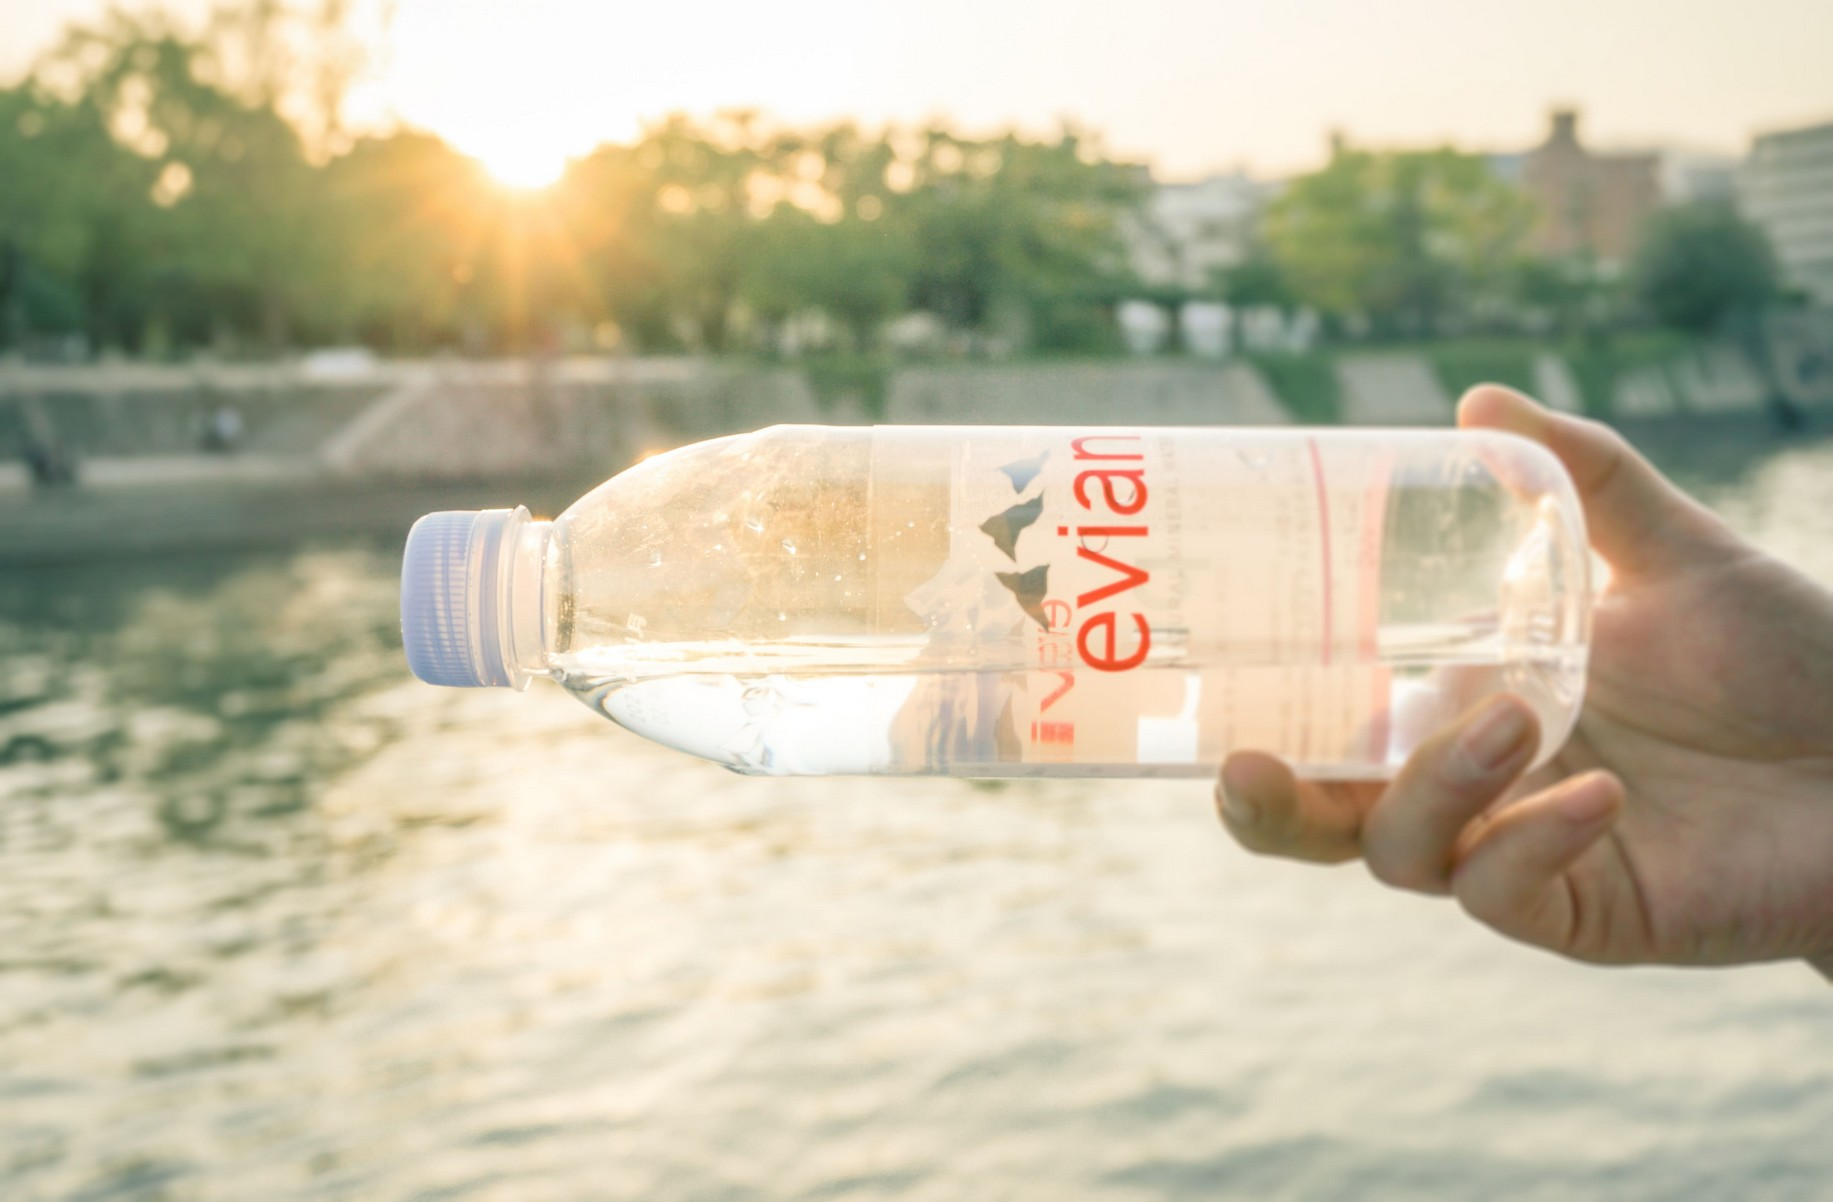 a hand holding a bottle of Evian water horizontally over the sea.